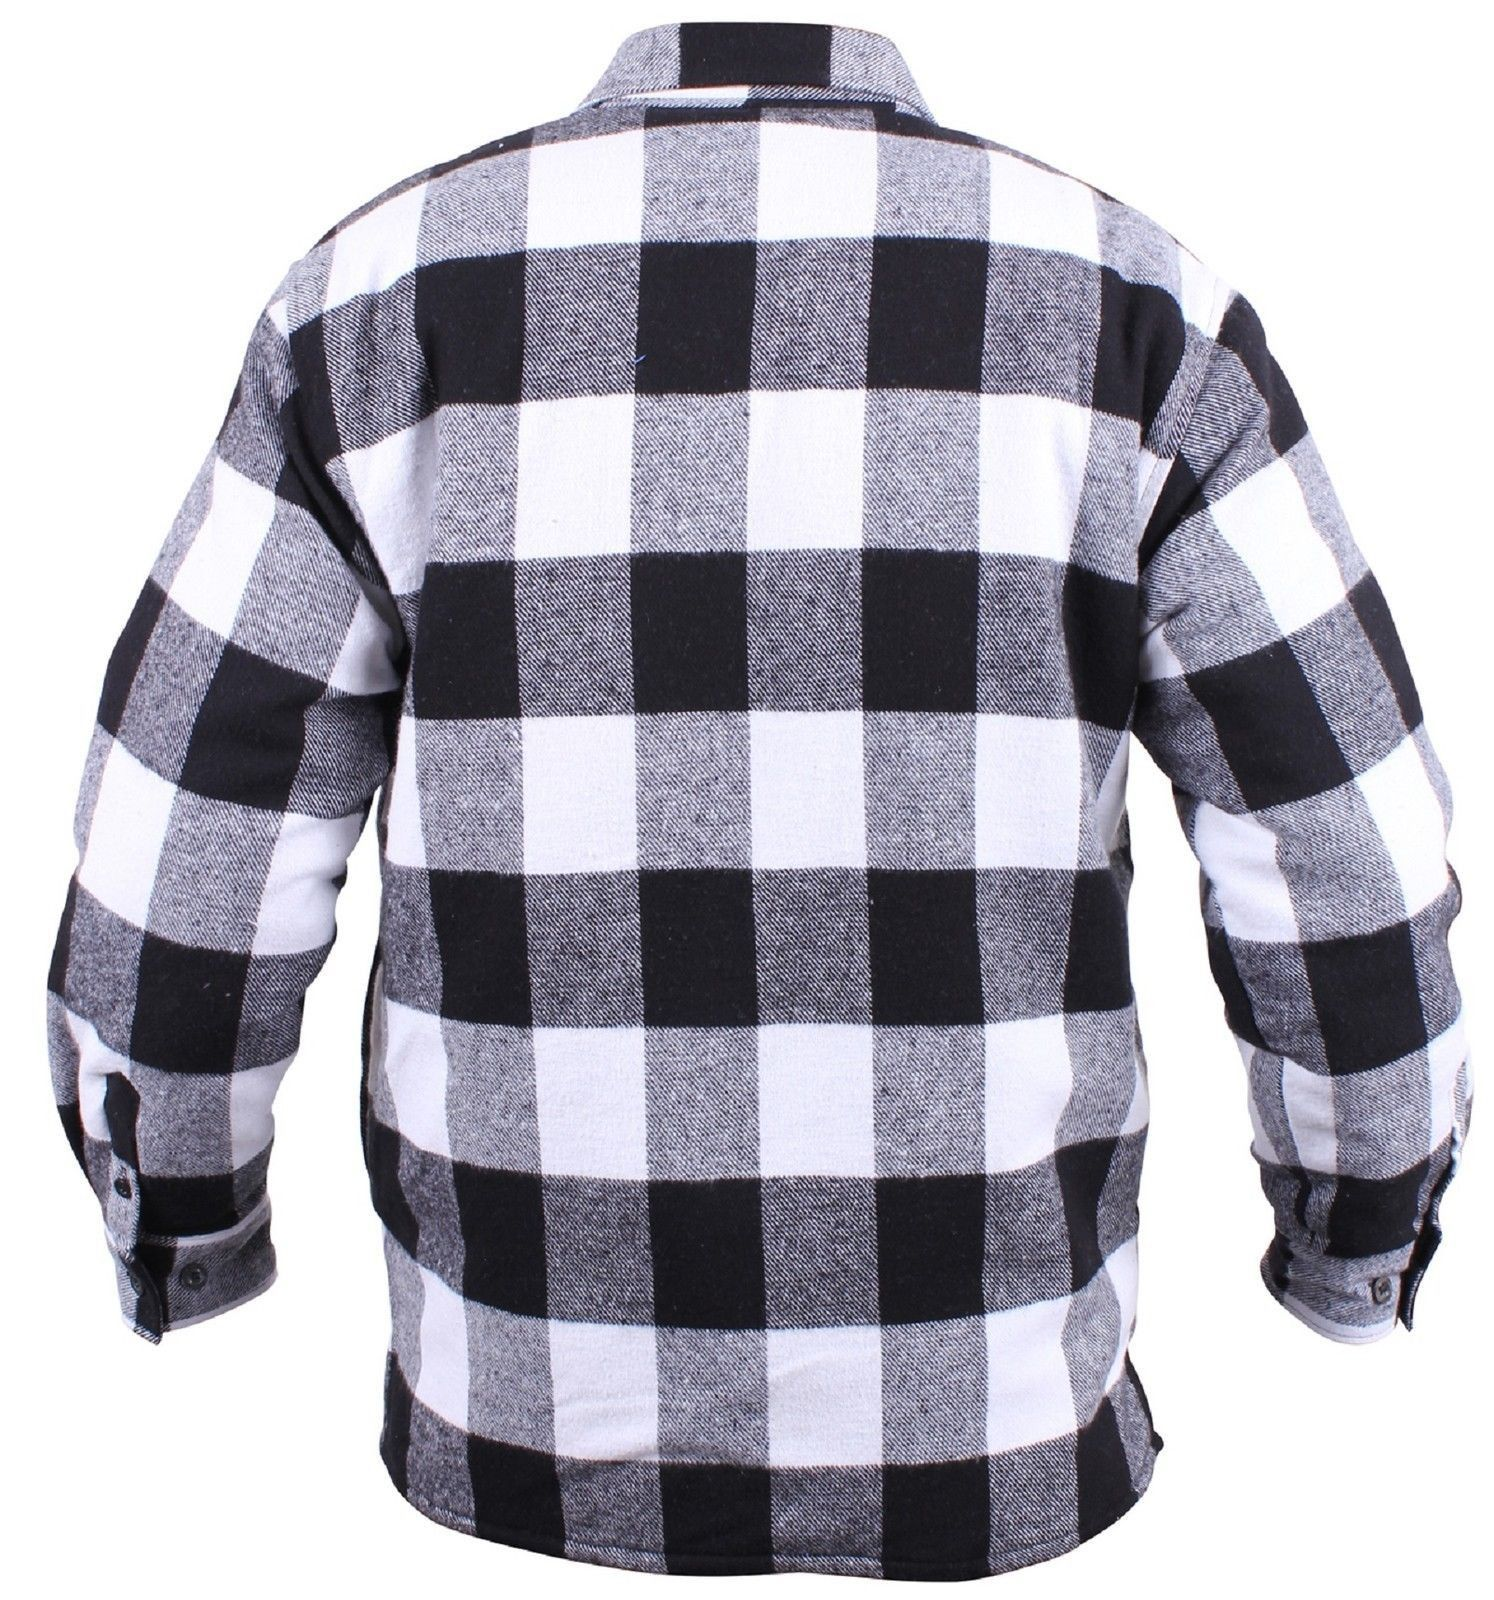 Sherpa-Lined Buffalo Plaid Flannel Shirt Pattern - Designed To Keep You  Extra Warm and Comfortable All Day Long - Quilted Taffeta Sleeve Lining  With ... a63e4245bf3